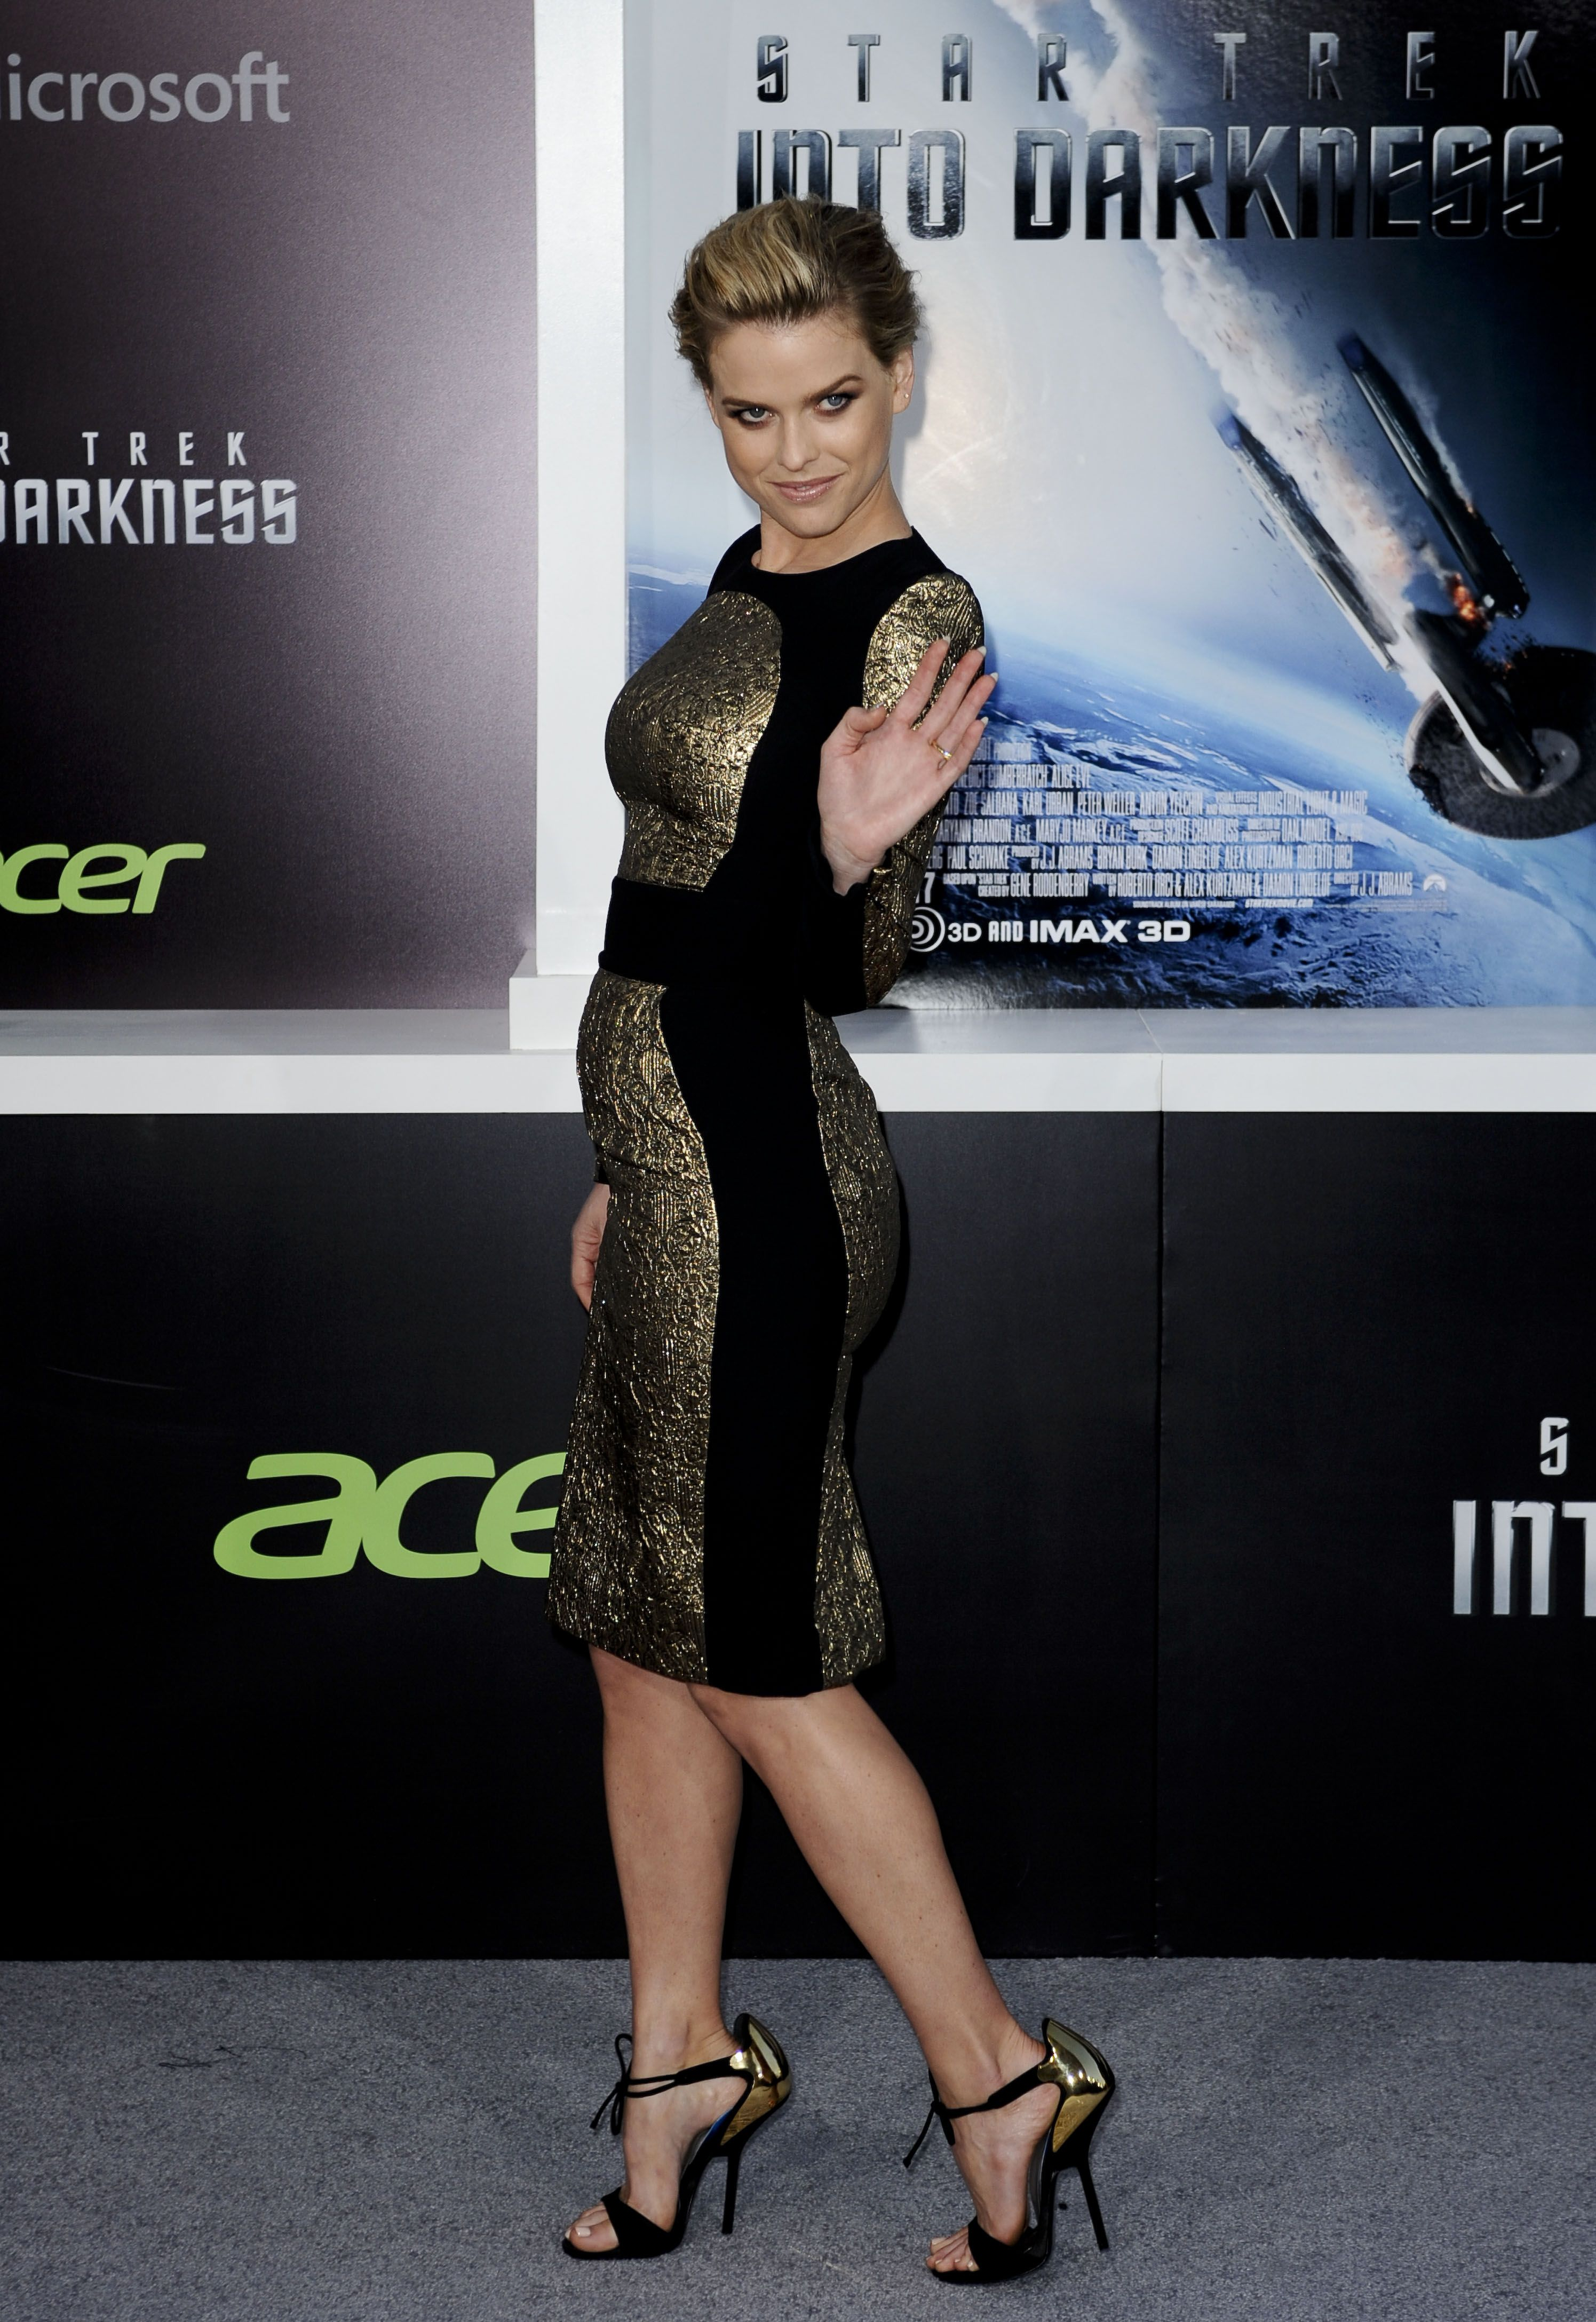 Star Trek into darkness alice eve at premiere